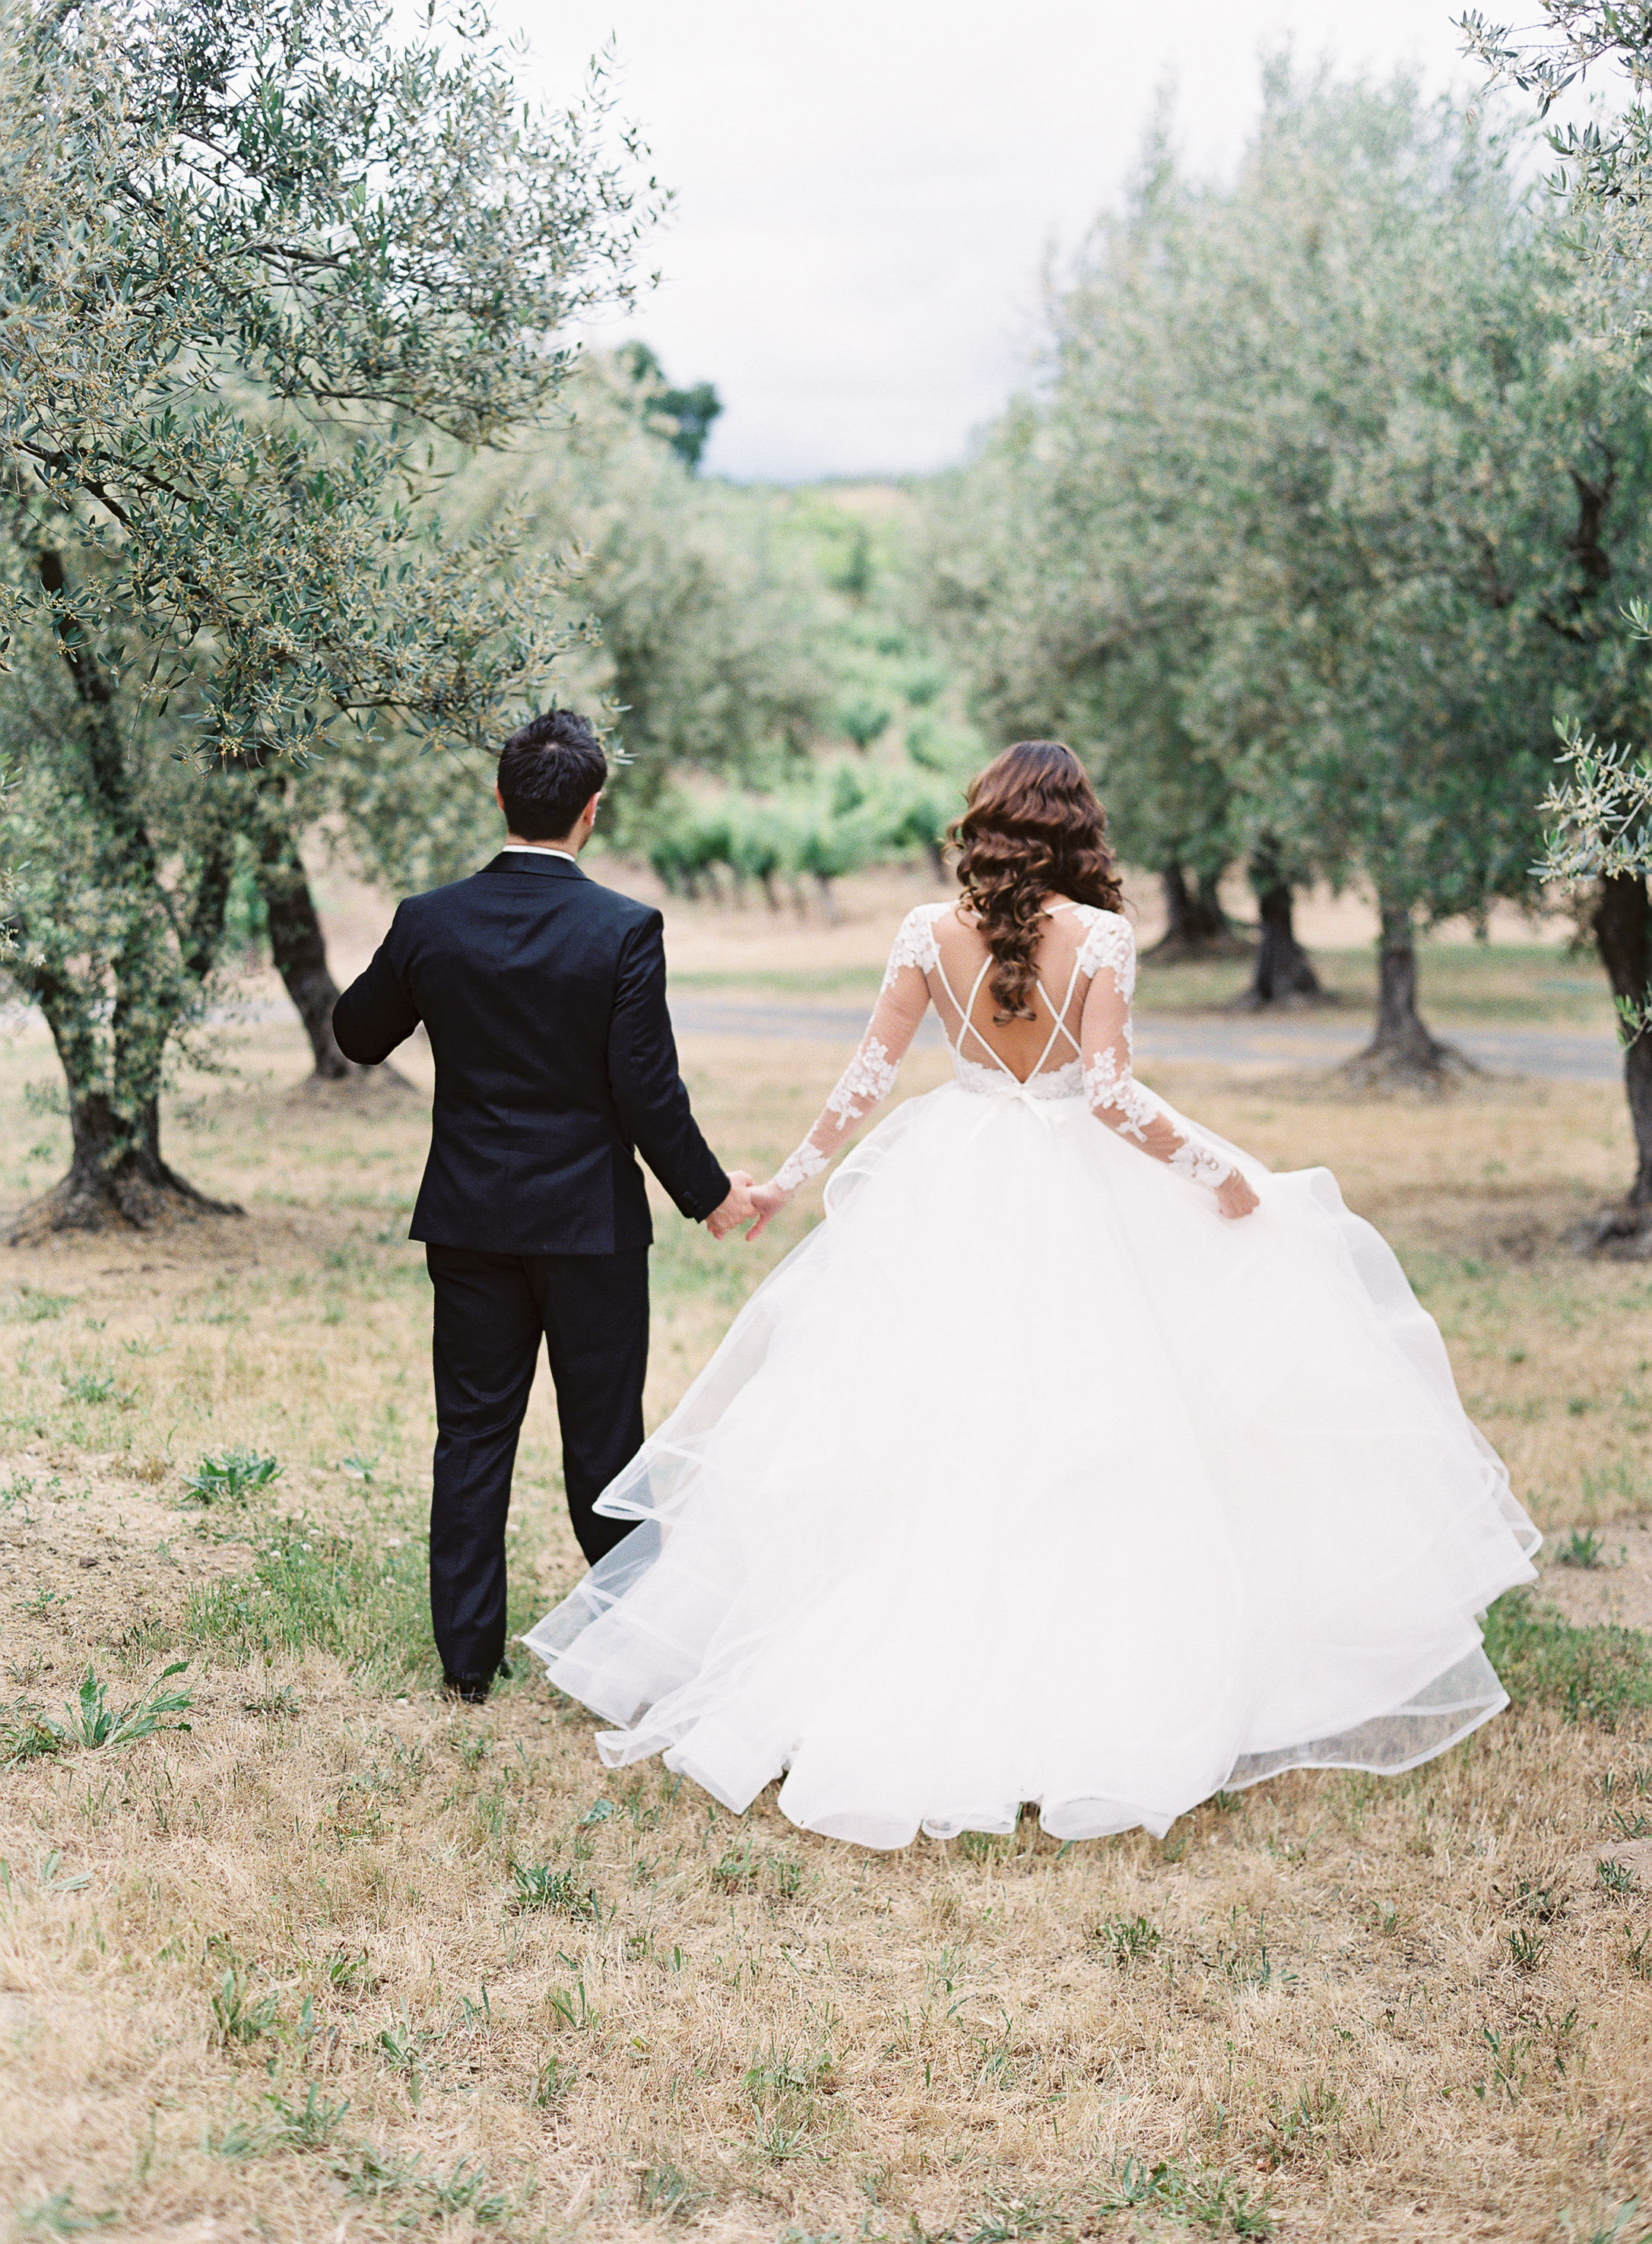 Meghan Mehan Photography | Fine Art Film Wedding Photographer | California | San Francisco | Napa | Sonoma | Santa Barbara | Big Sur | Destination Wedding Photographer 062.jpg